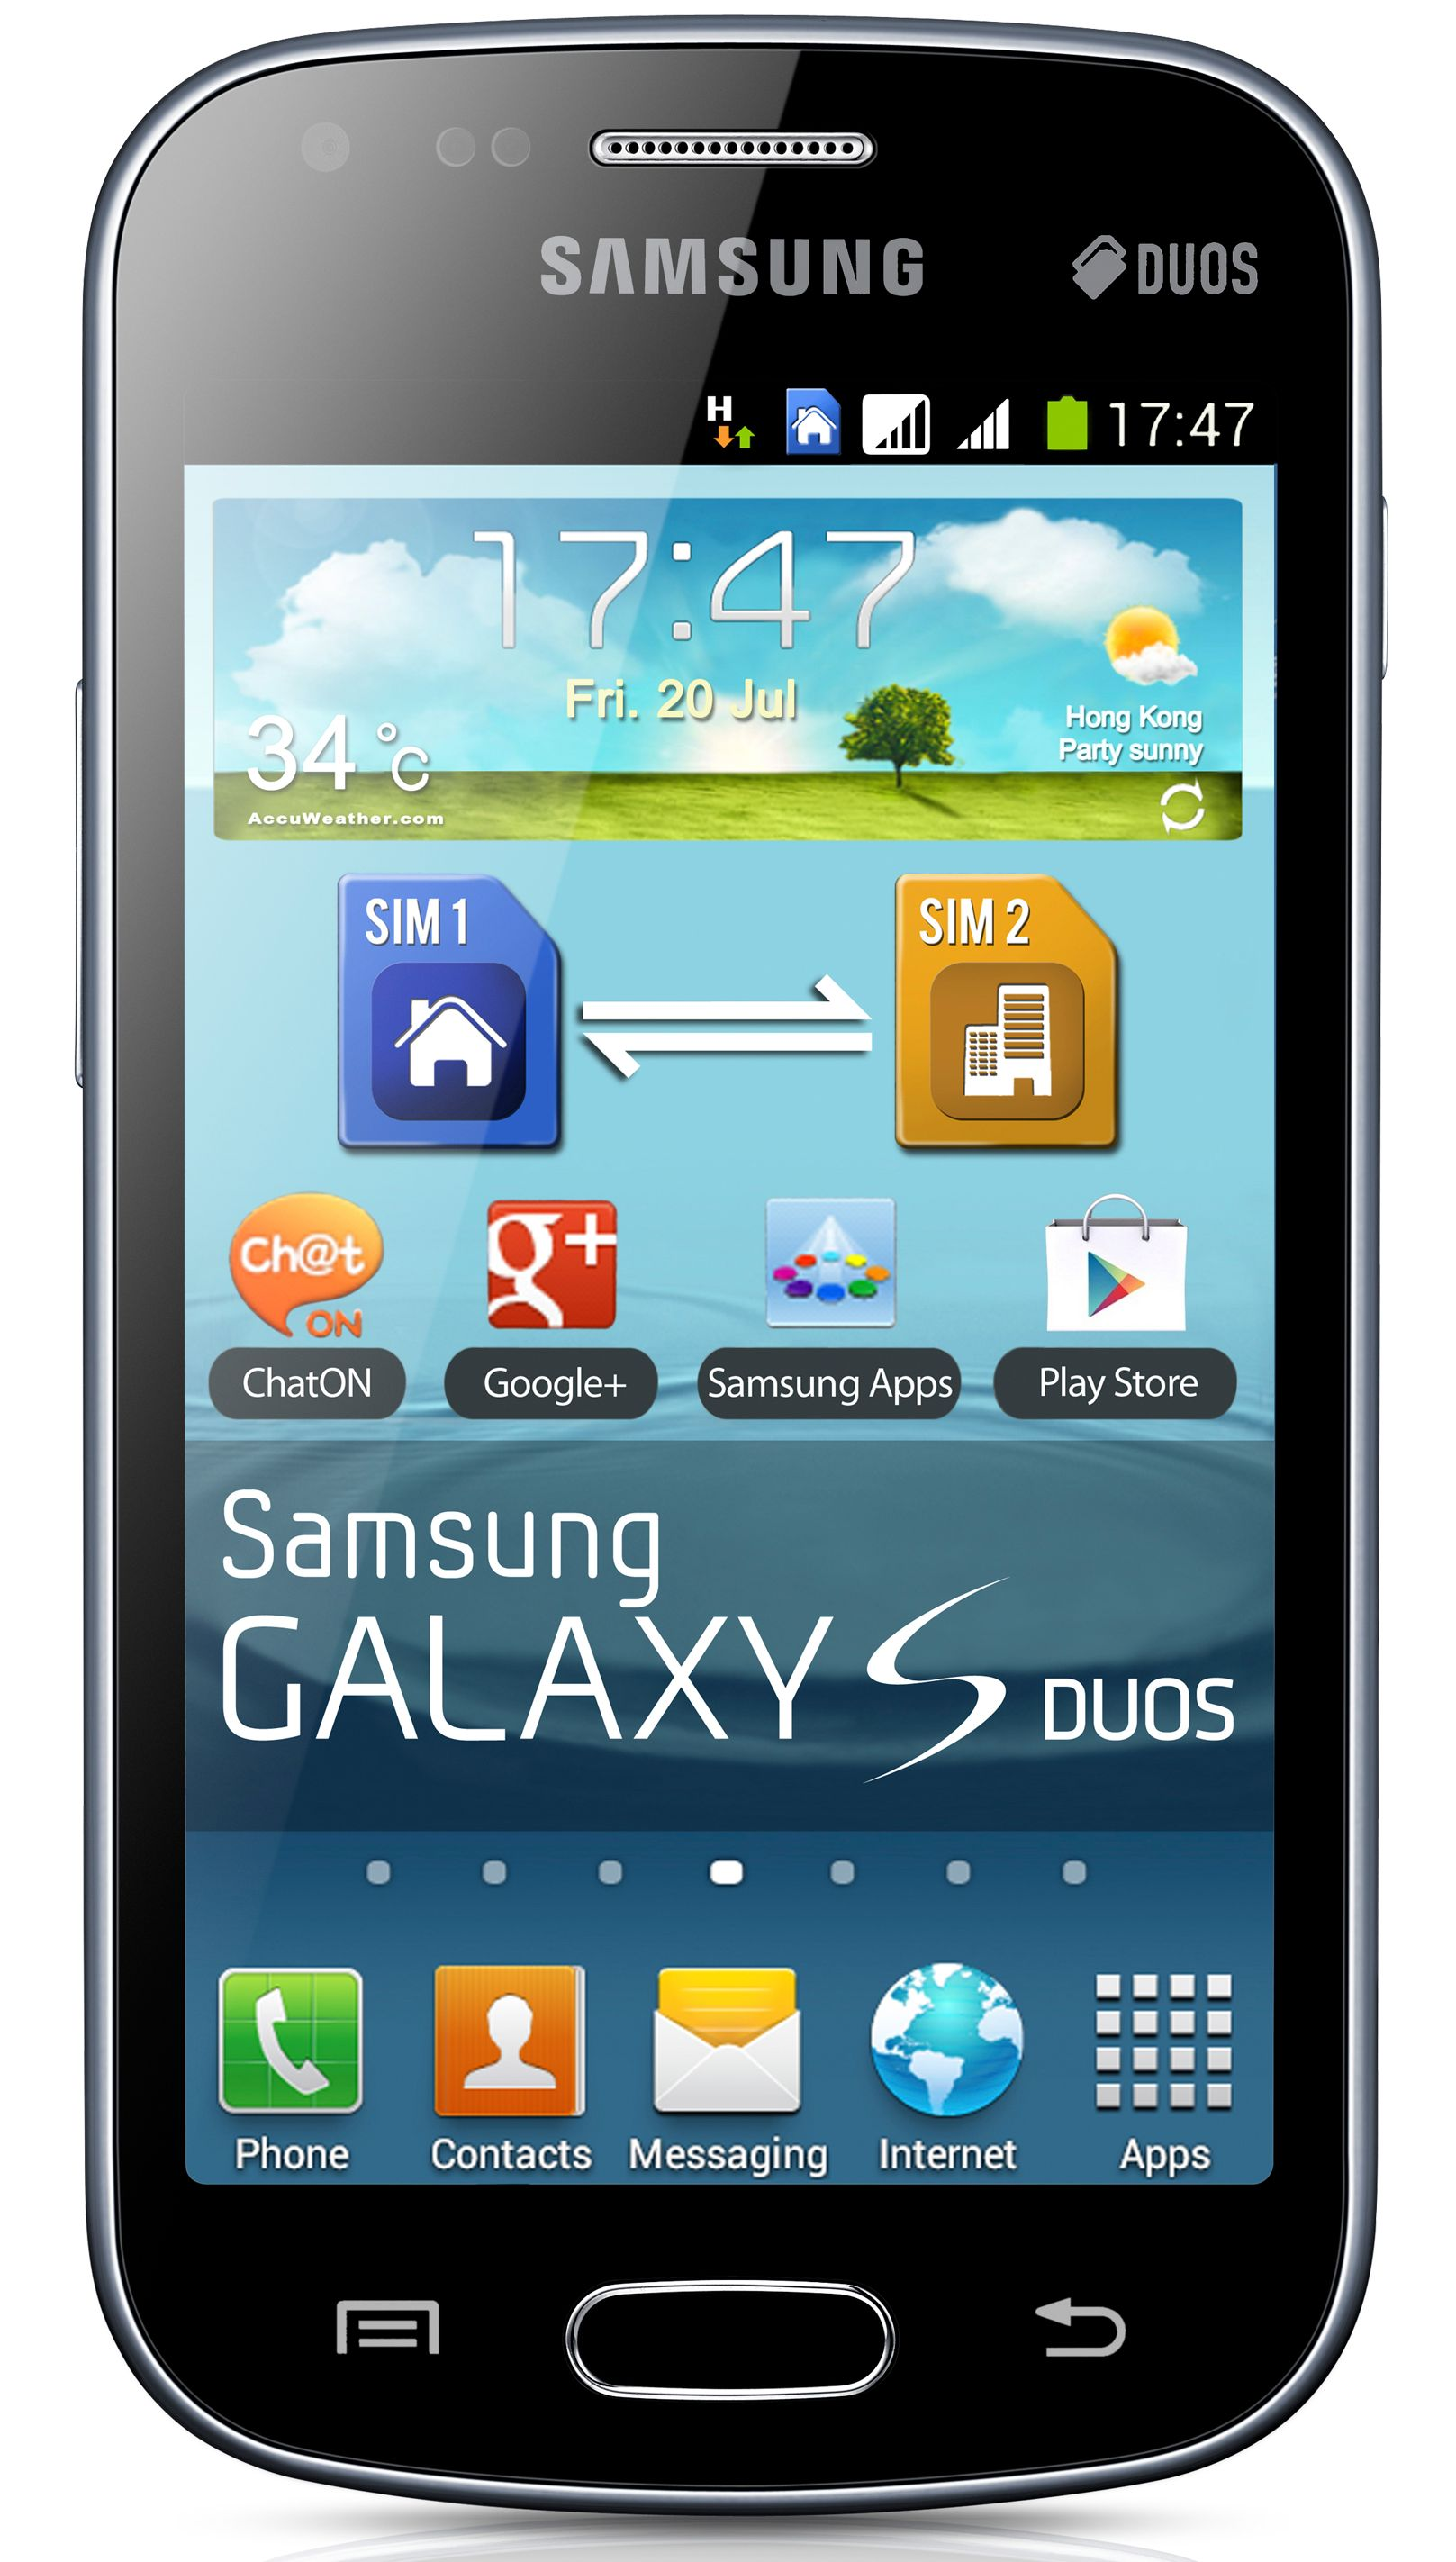 Samsung Galaxy S Duos S7562 GSM Unlocked Dual Sim Android Cell Phone - Black